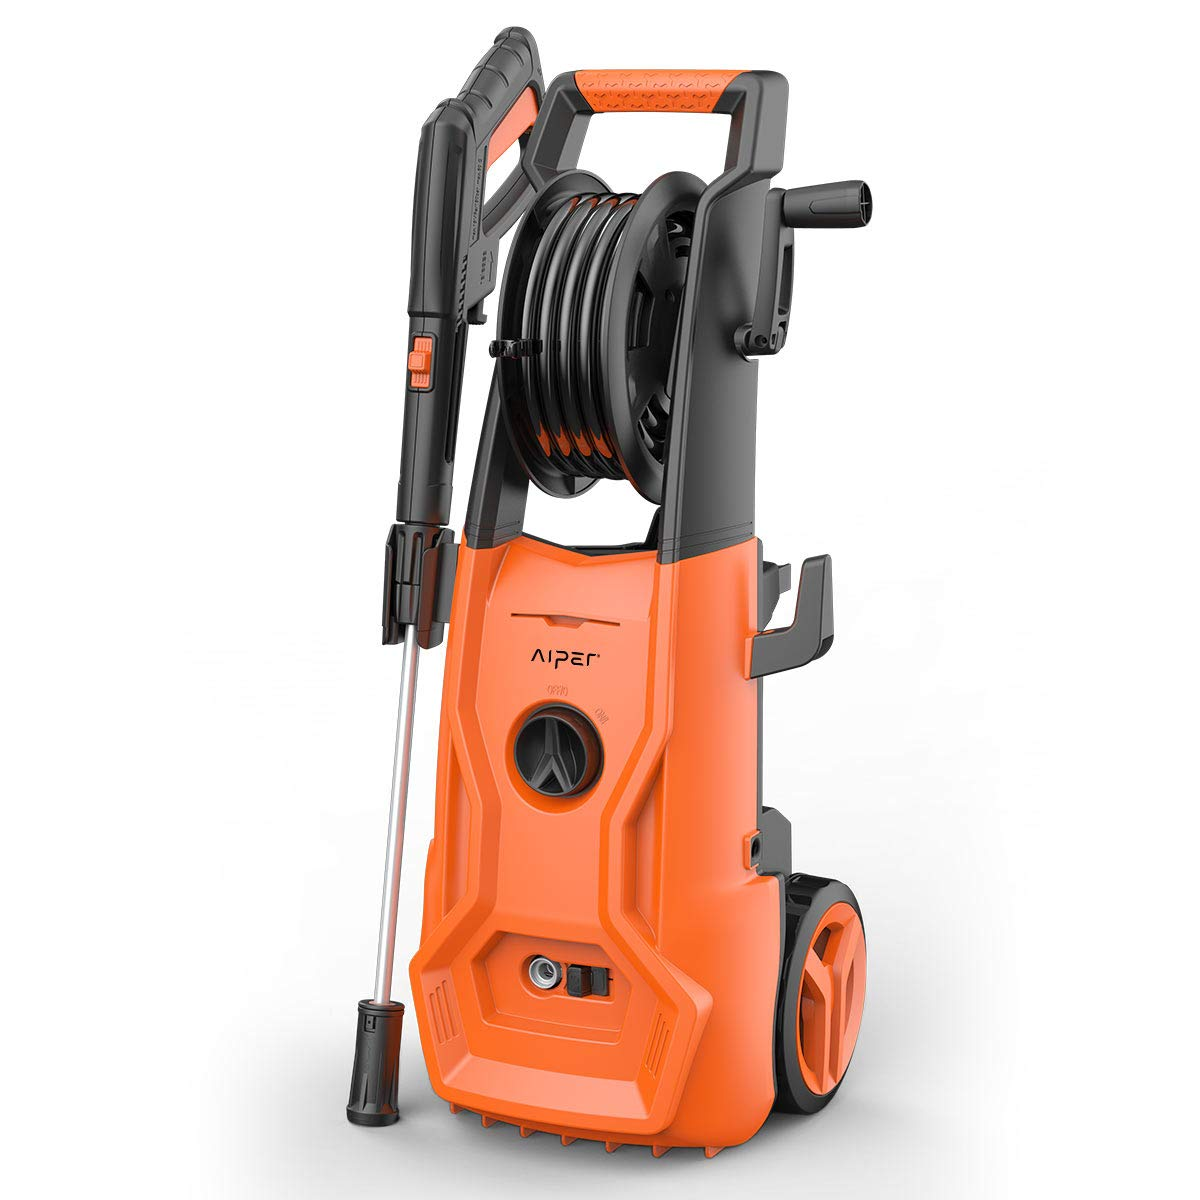 AIPER Electric Pressure Cleaner Adjustable